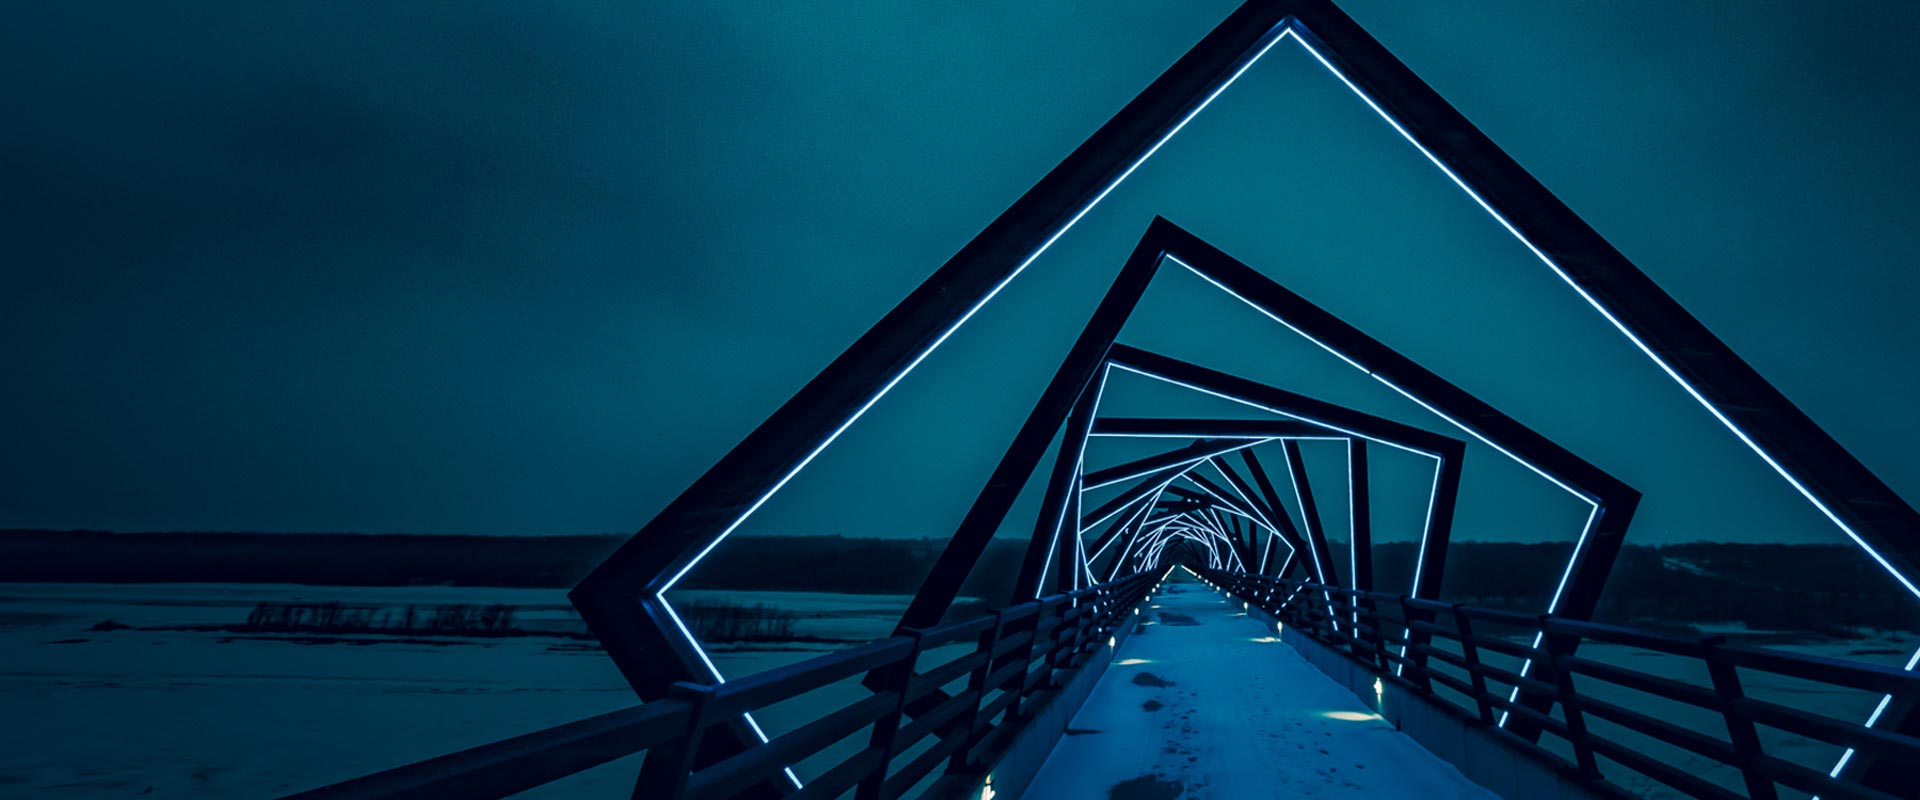 Telair is your bridge to innovation